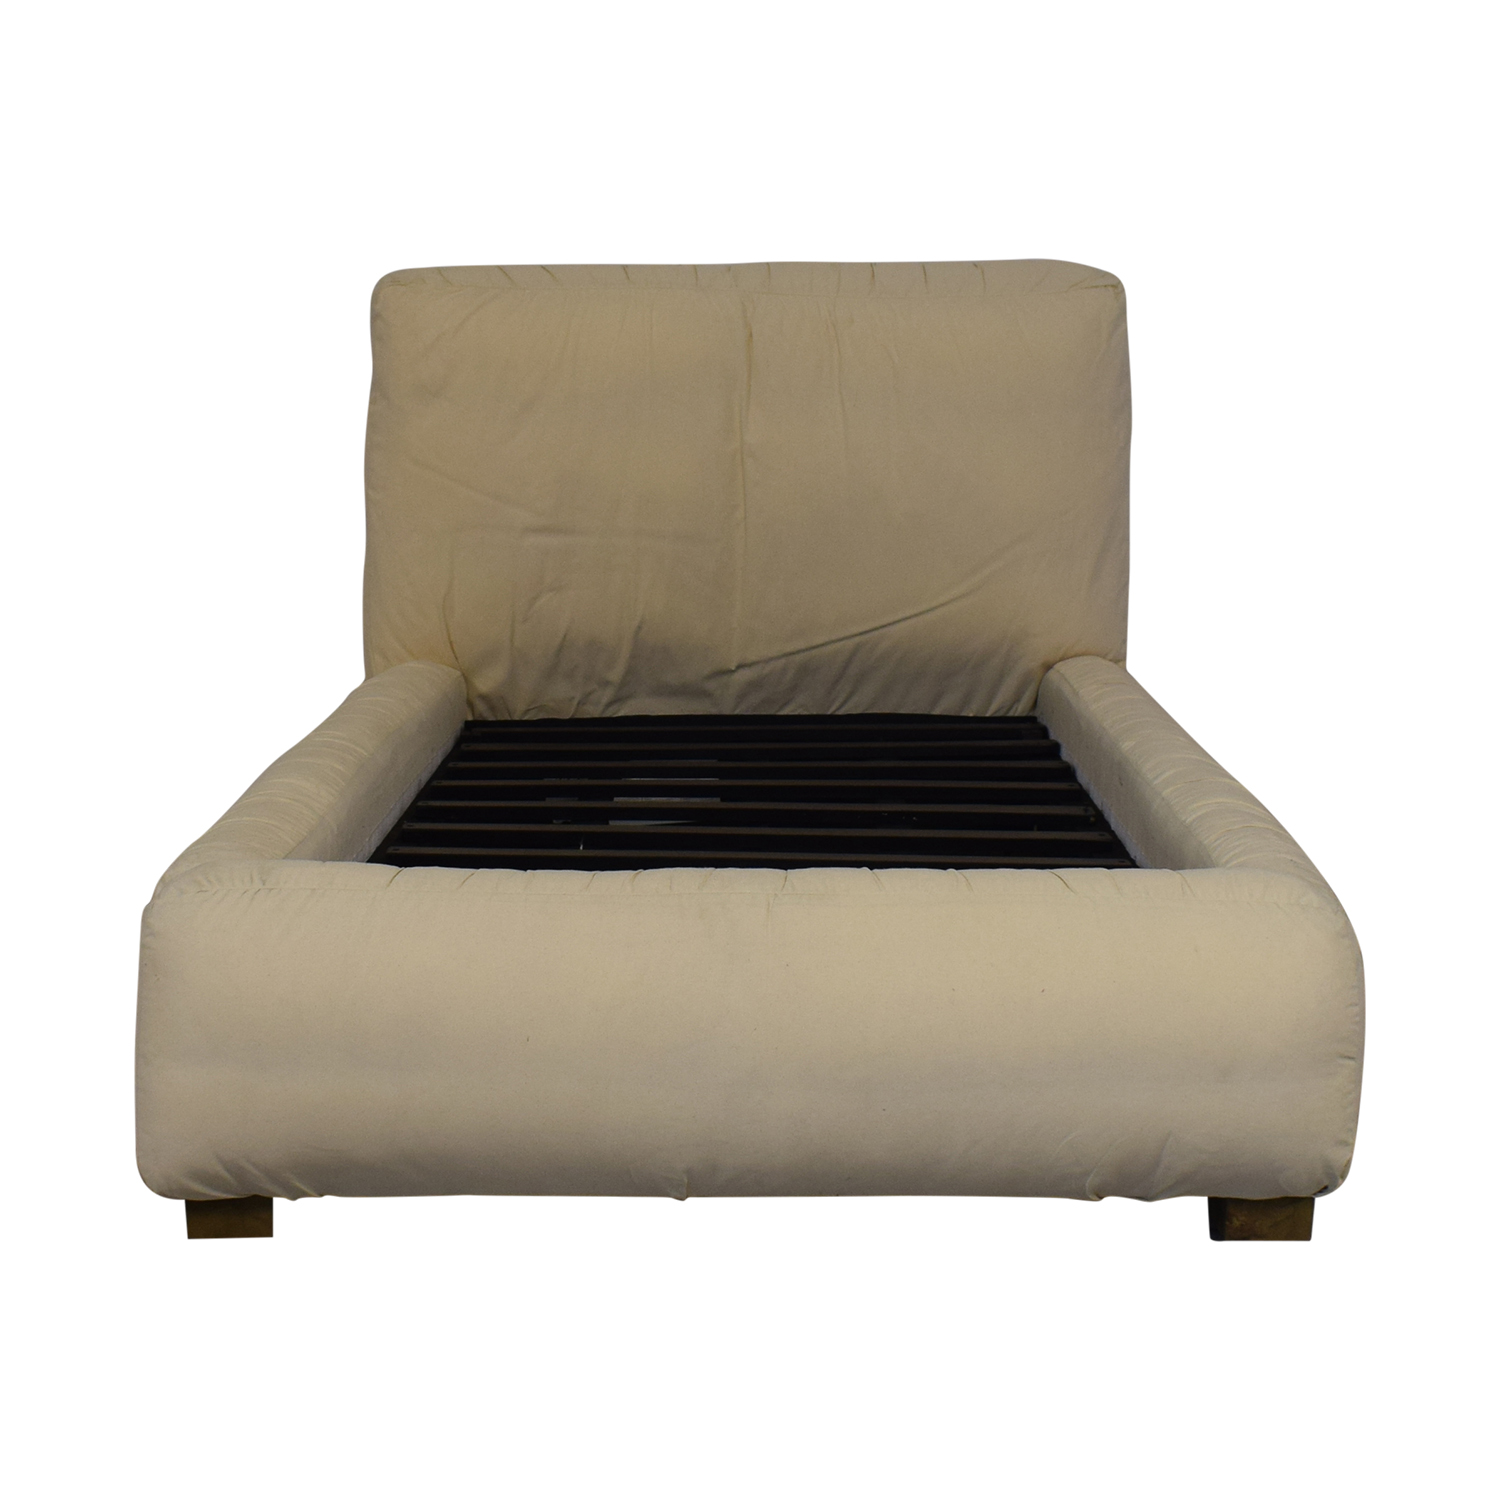 buy Restoration Hardware Sona Upholstered Platform Twin Bed Restoration Hardware Beds